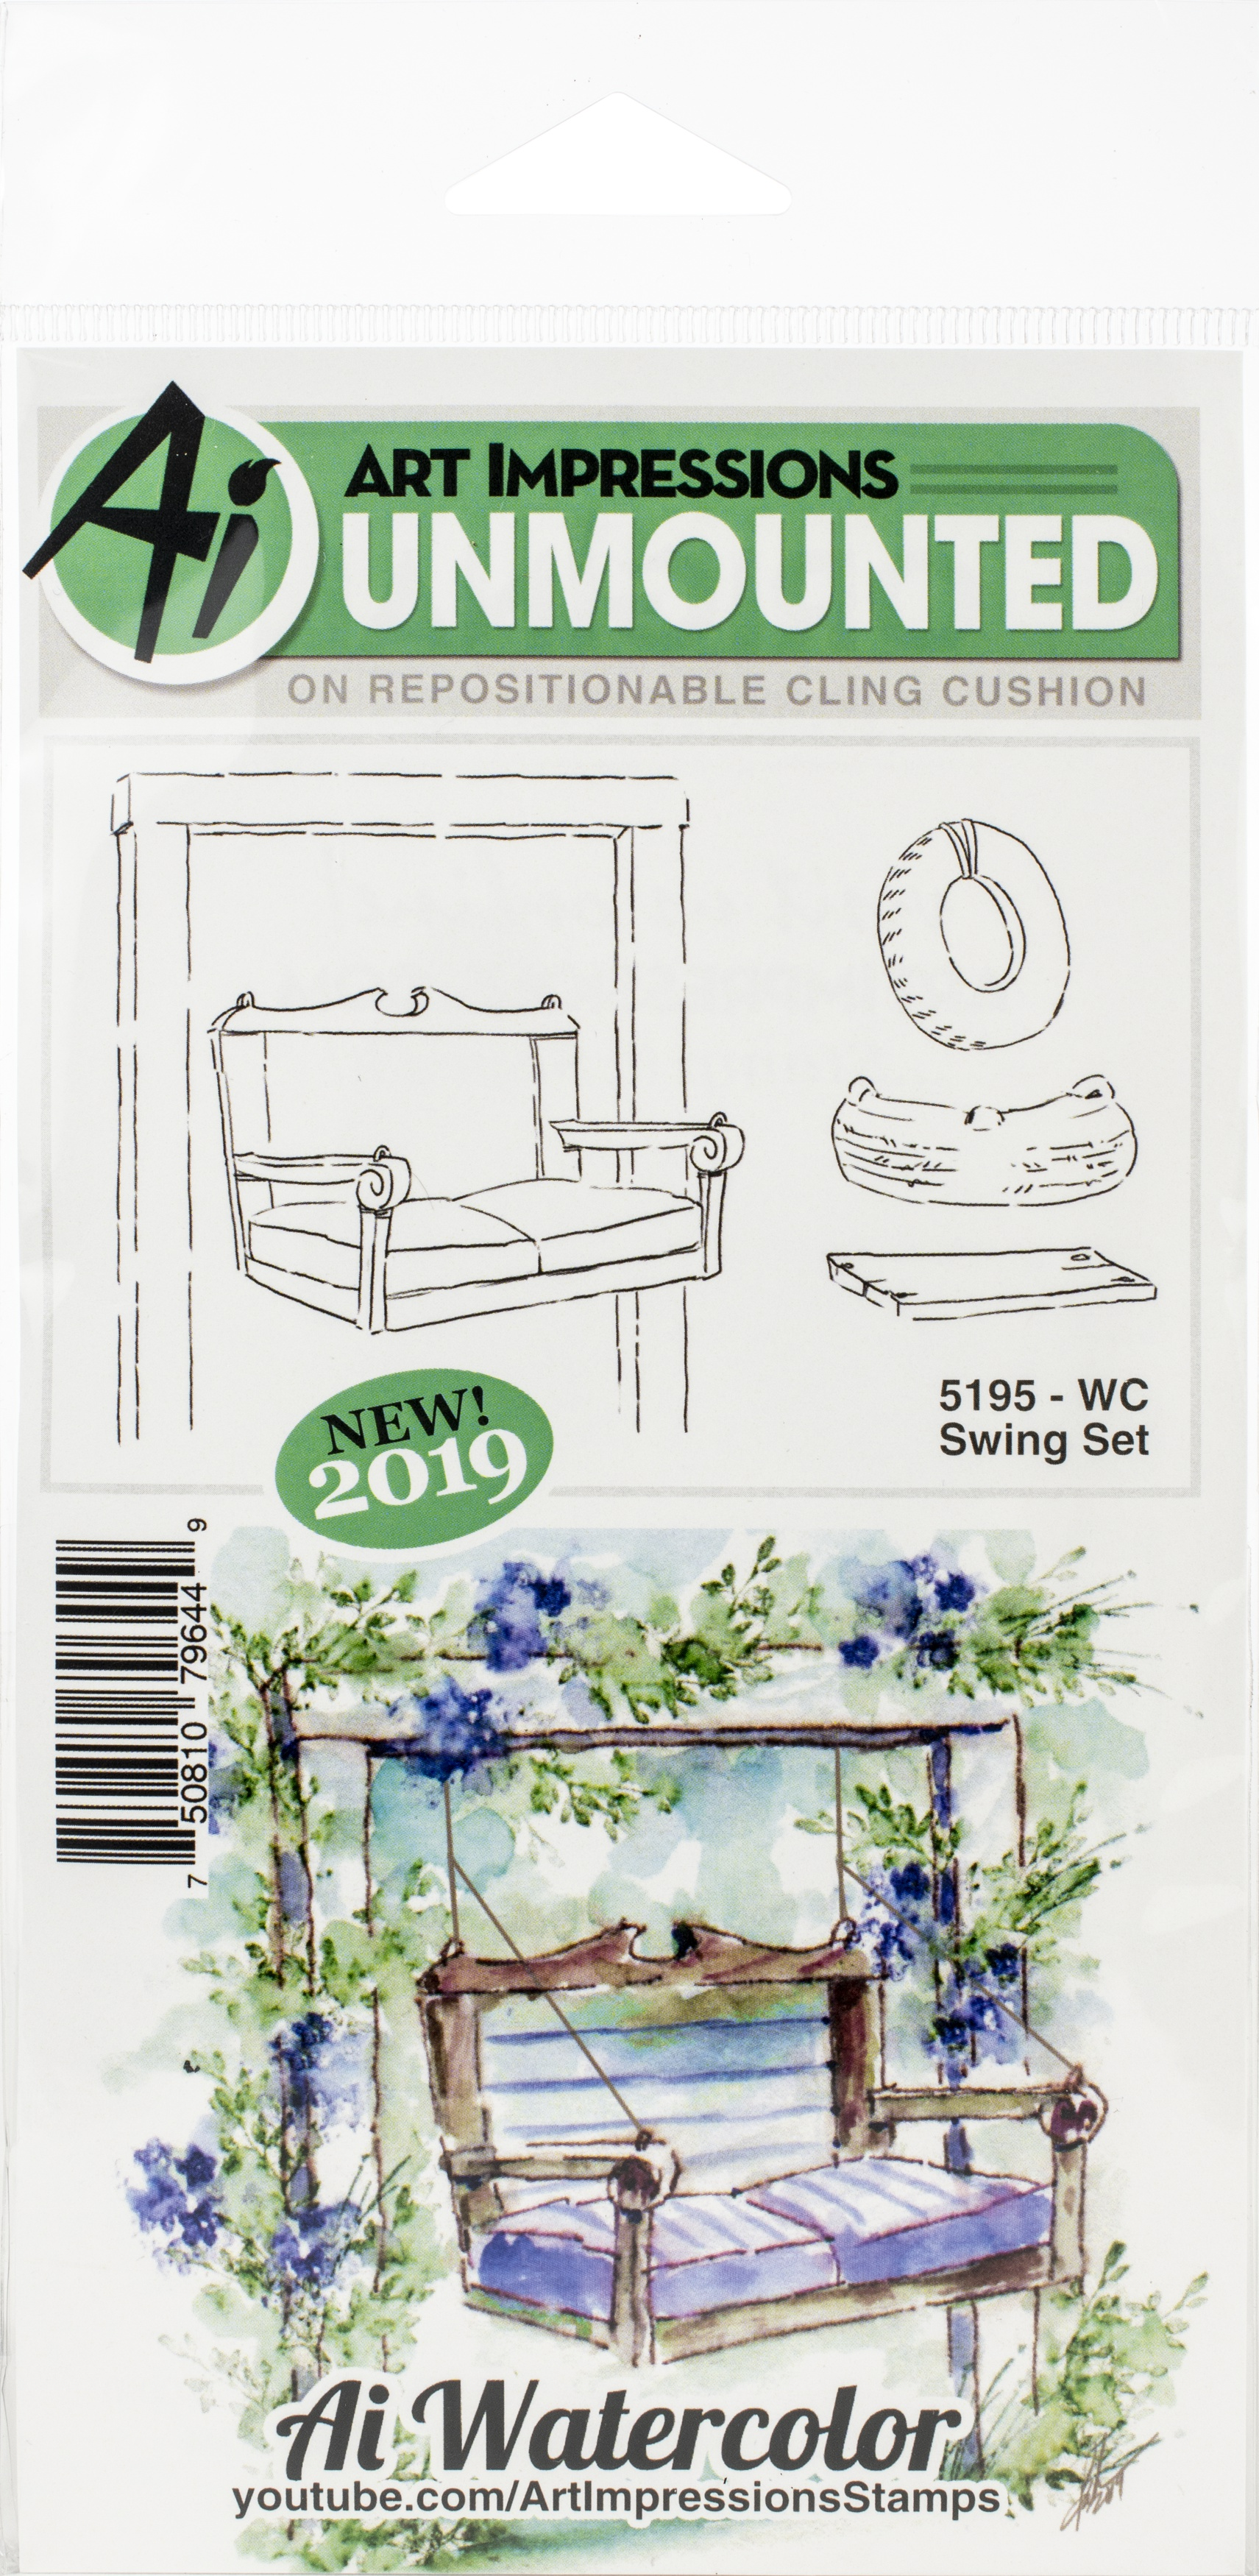 WC Swing Stamp Set